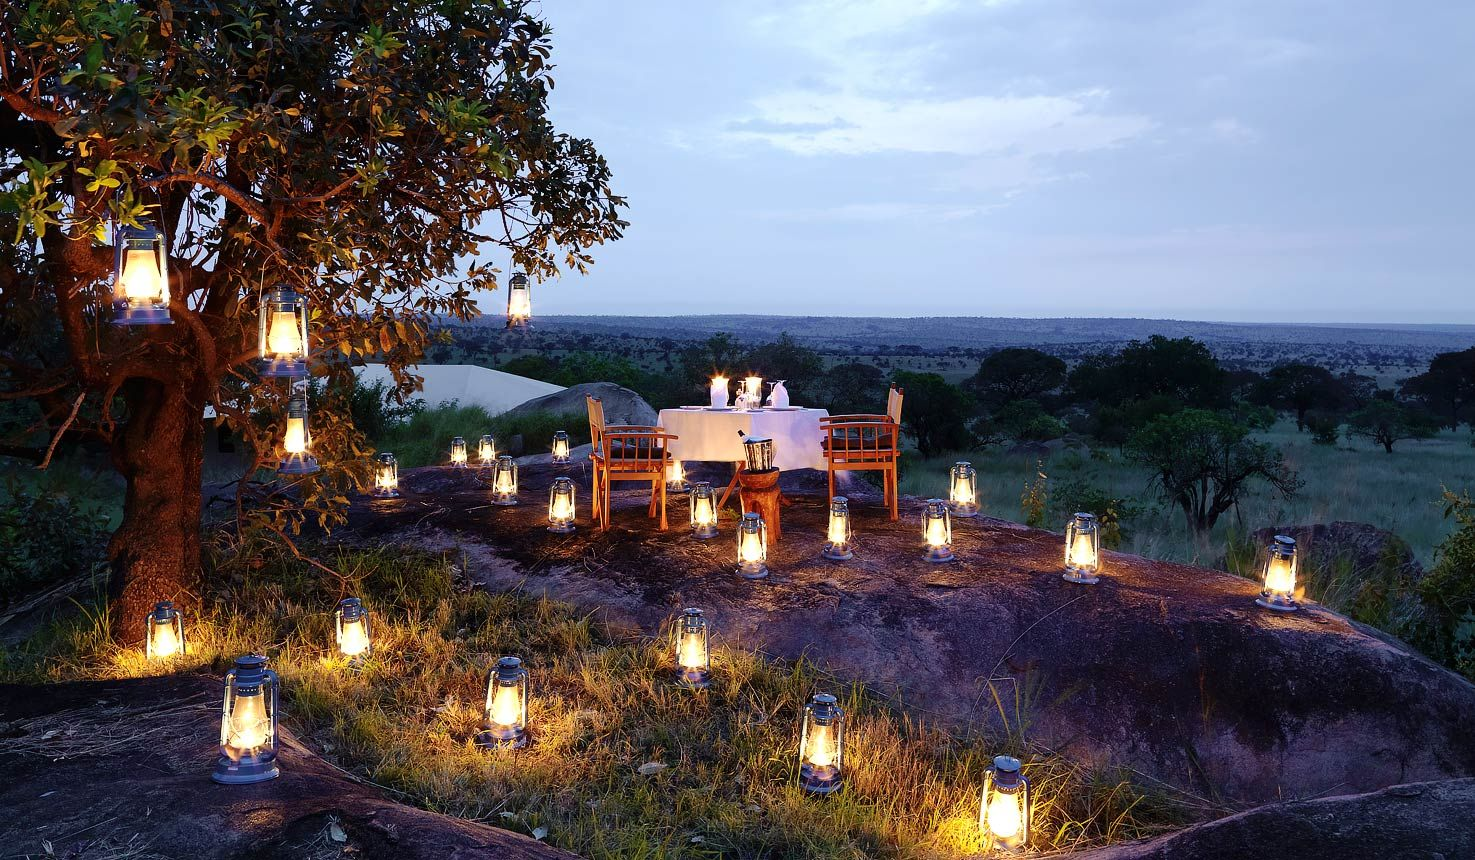 A candle-lit dinner in the great outdoors overlooking a breathtaking view of the magnificent East African landscape will make your African safari honeymoon a memorable one.